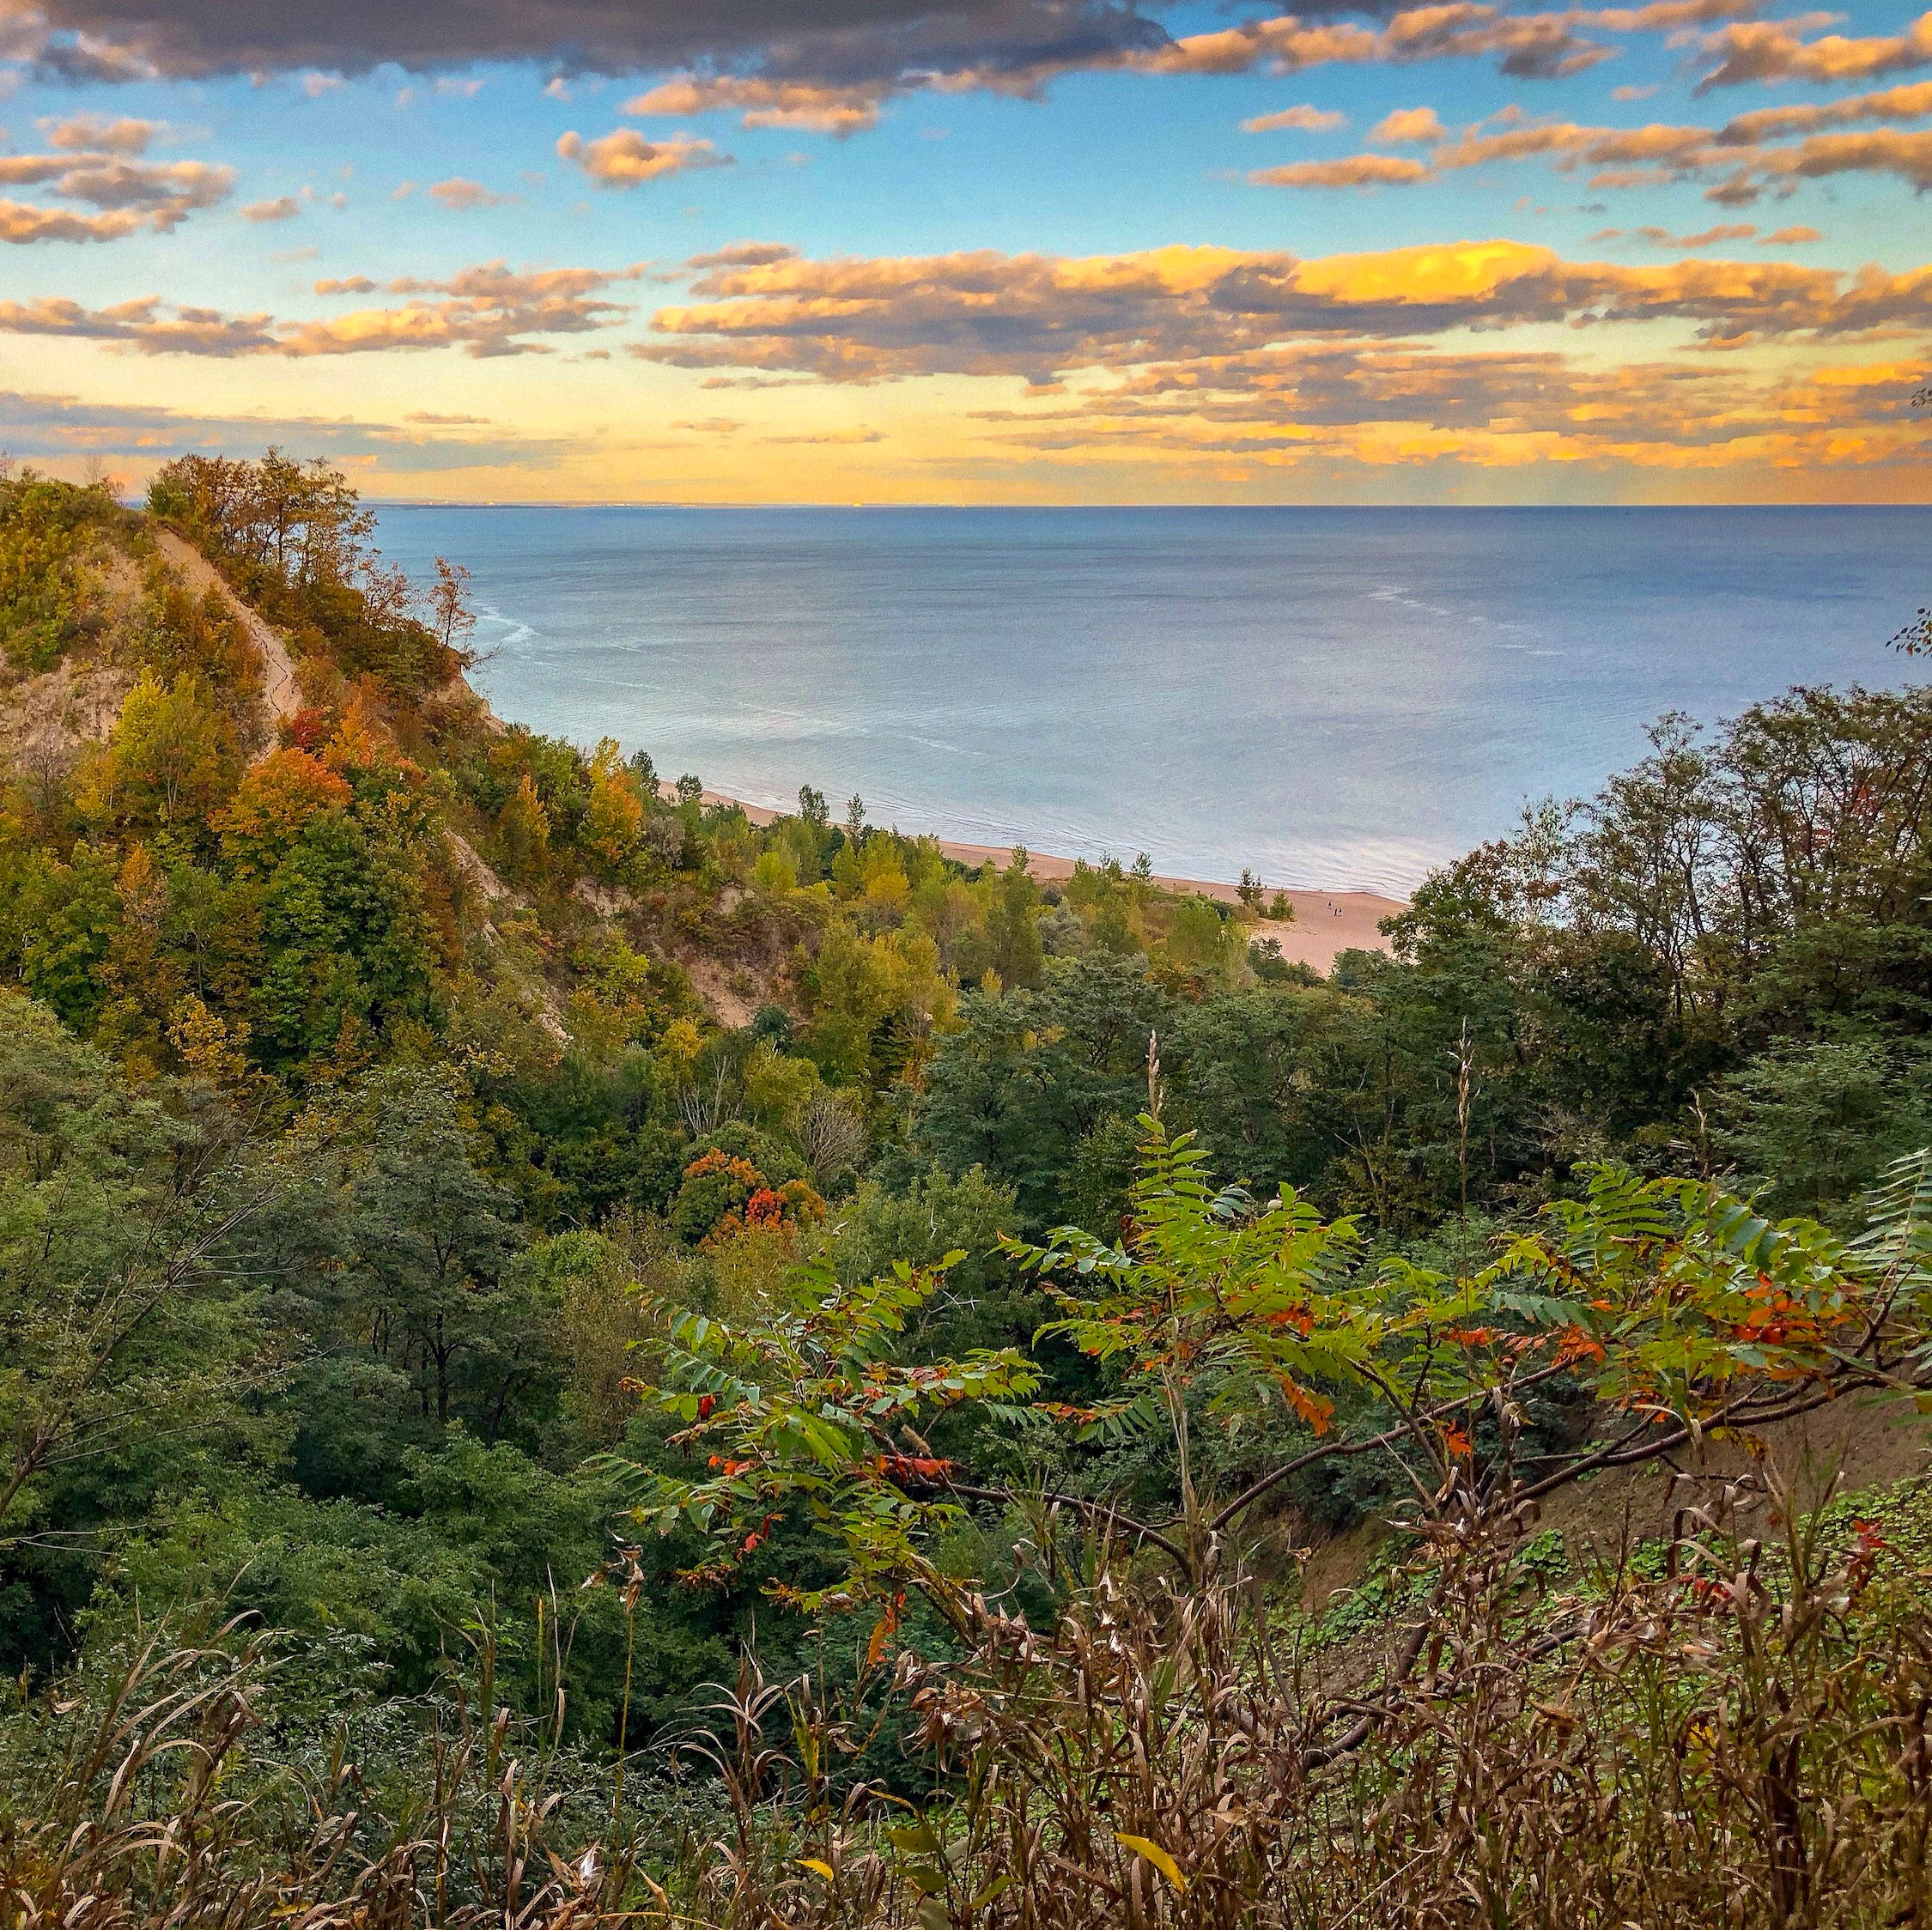 View from Scarborough Bluffs, Toronto Ontario. Unique places to explore in Ontario #autumncolours #fallfoliage #curiocitytoronto #visualizetoronto #scarboroughbluffs #scarborough #scarboroughontario #torontoviews #canadiancreatives #imagesofcanada #viewsfordays #cliffside #exploreontario